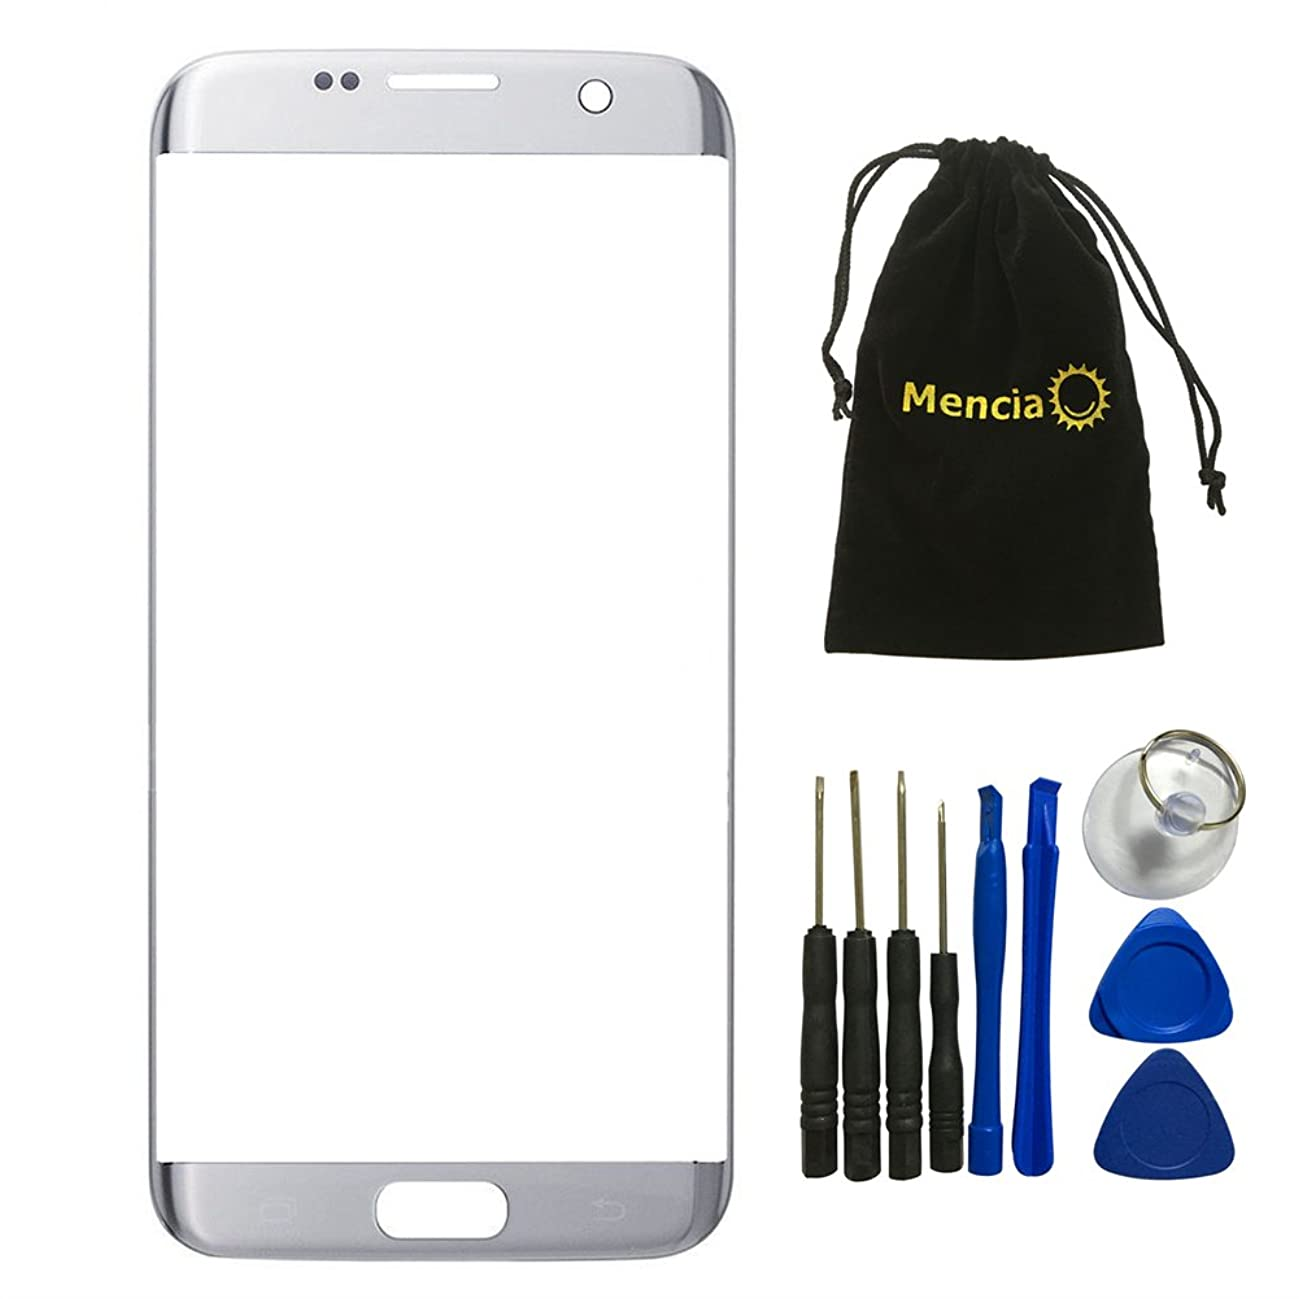 Mencia Front Cover Screen Glass Lens Outer Replacement For Samsung Galaxy S7 Edge G935 G935F G935A G935V G935P G935T G935R4 G935W8 (NO LCD and Digitizer) (Silver)